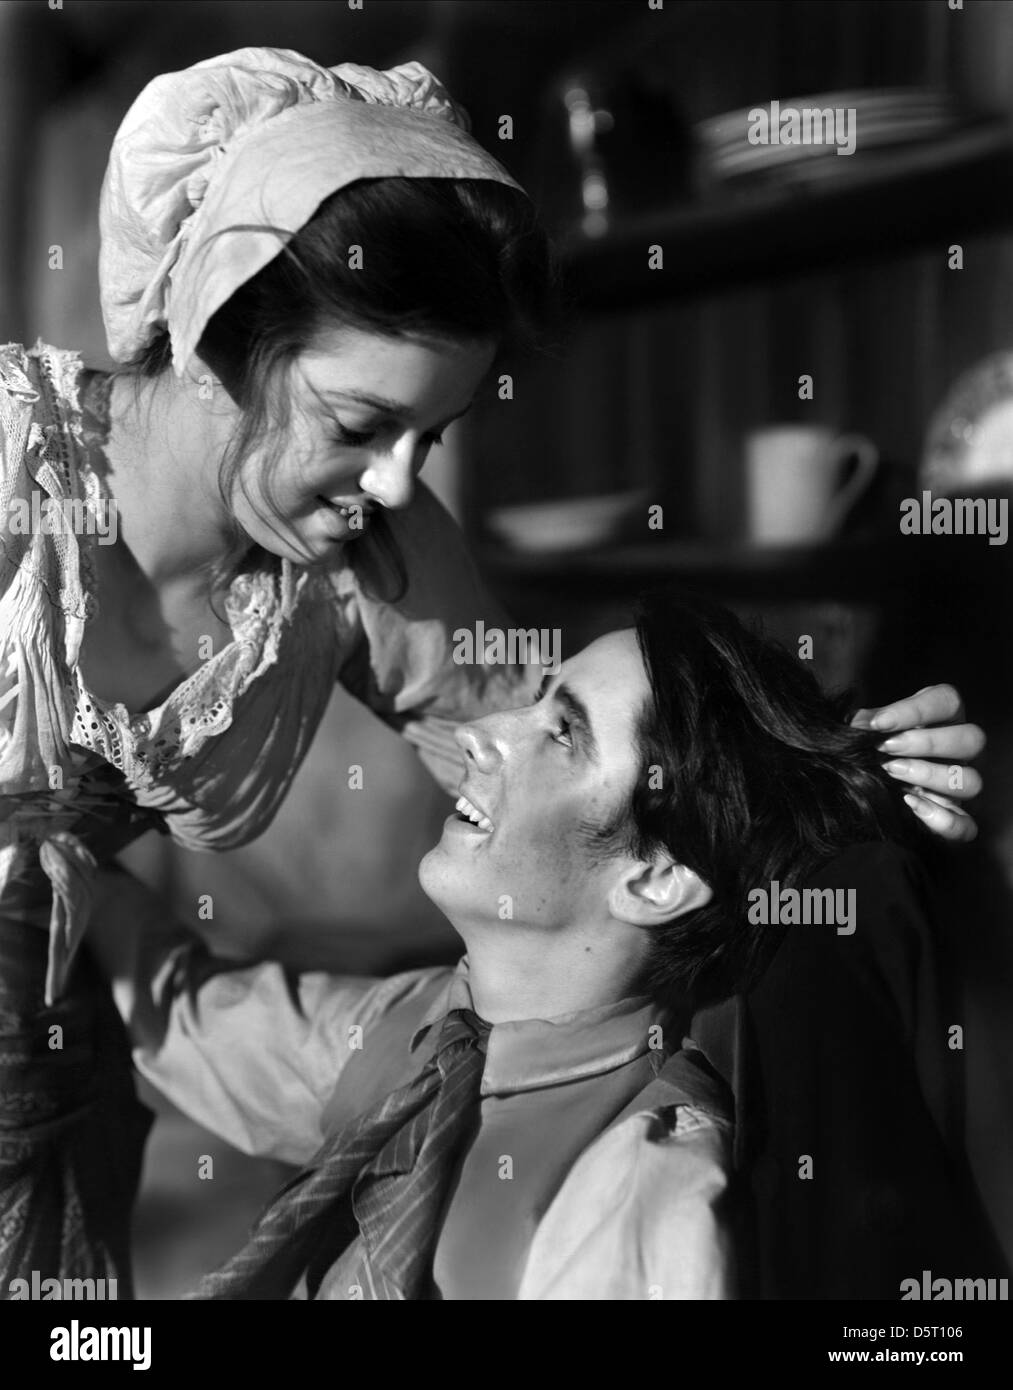 dear black and white stock photos images alamy diana dors michael dear oliver twist 1948 stock image